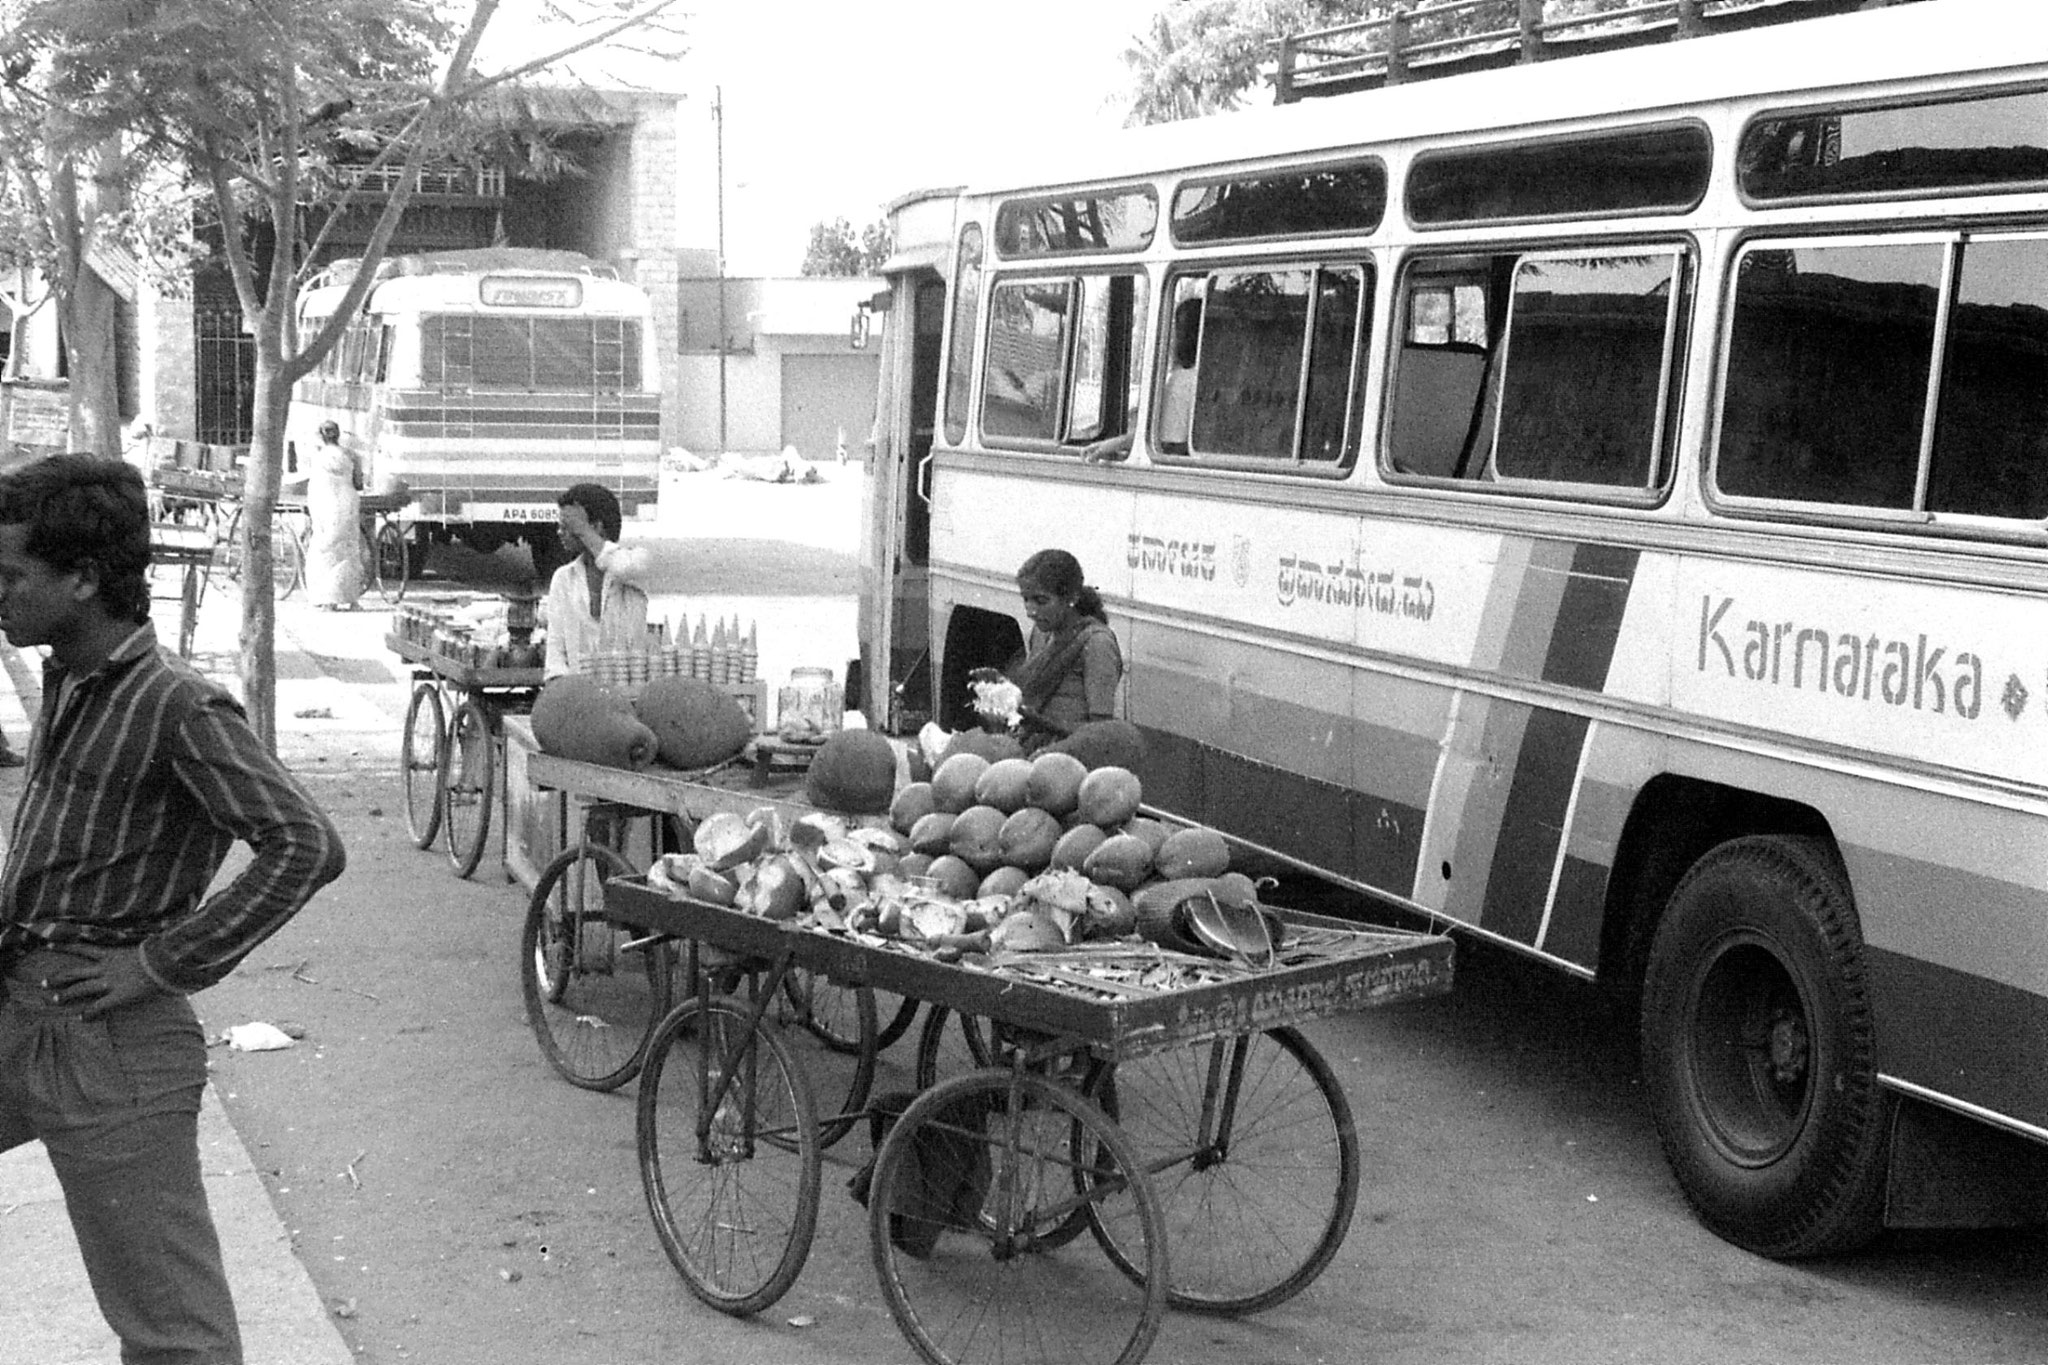 13/2/1990: 35: coconut and jack fruit seller